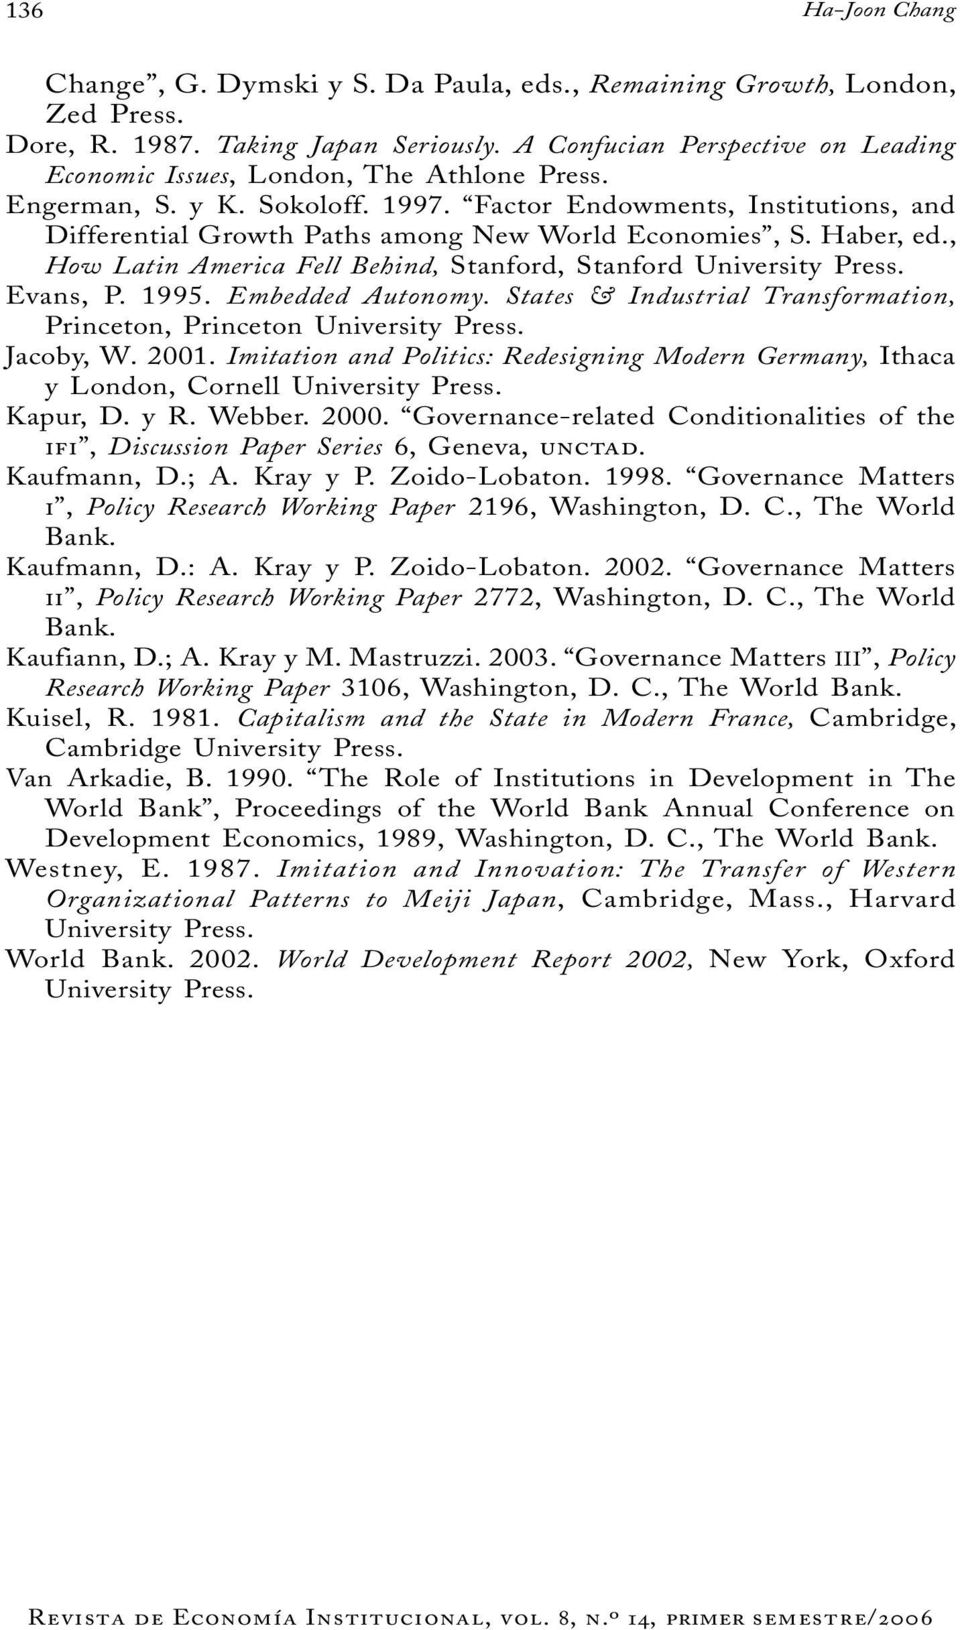 Factor Endowments, Institutions, and Differential Growth Paths among New World Economies, S. Haber, ed., How Latin America Fell Behind, Stanford, Stanford University Press. Evans, P. 1995.